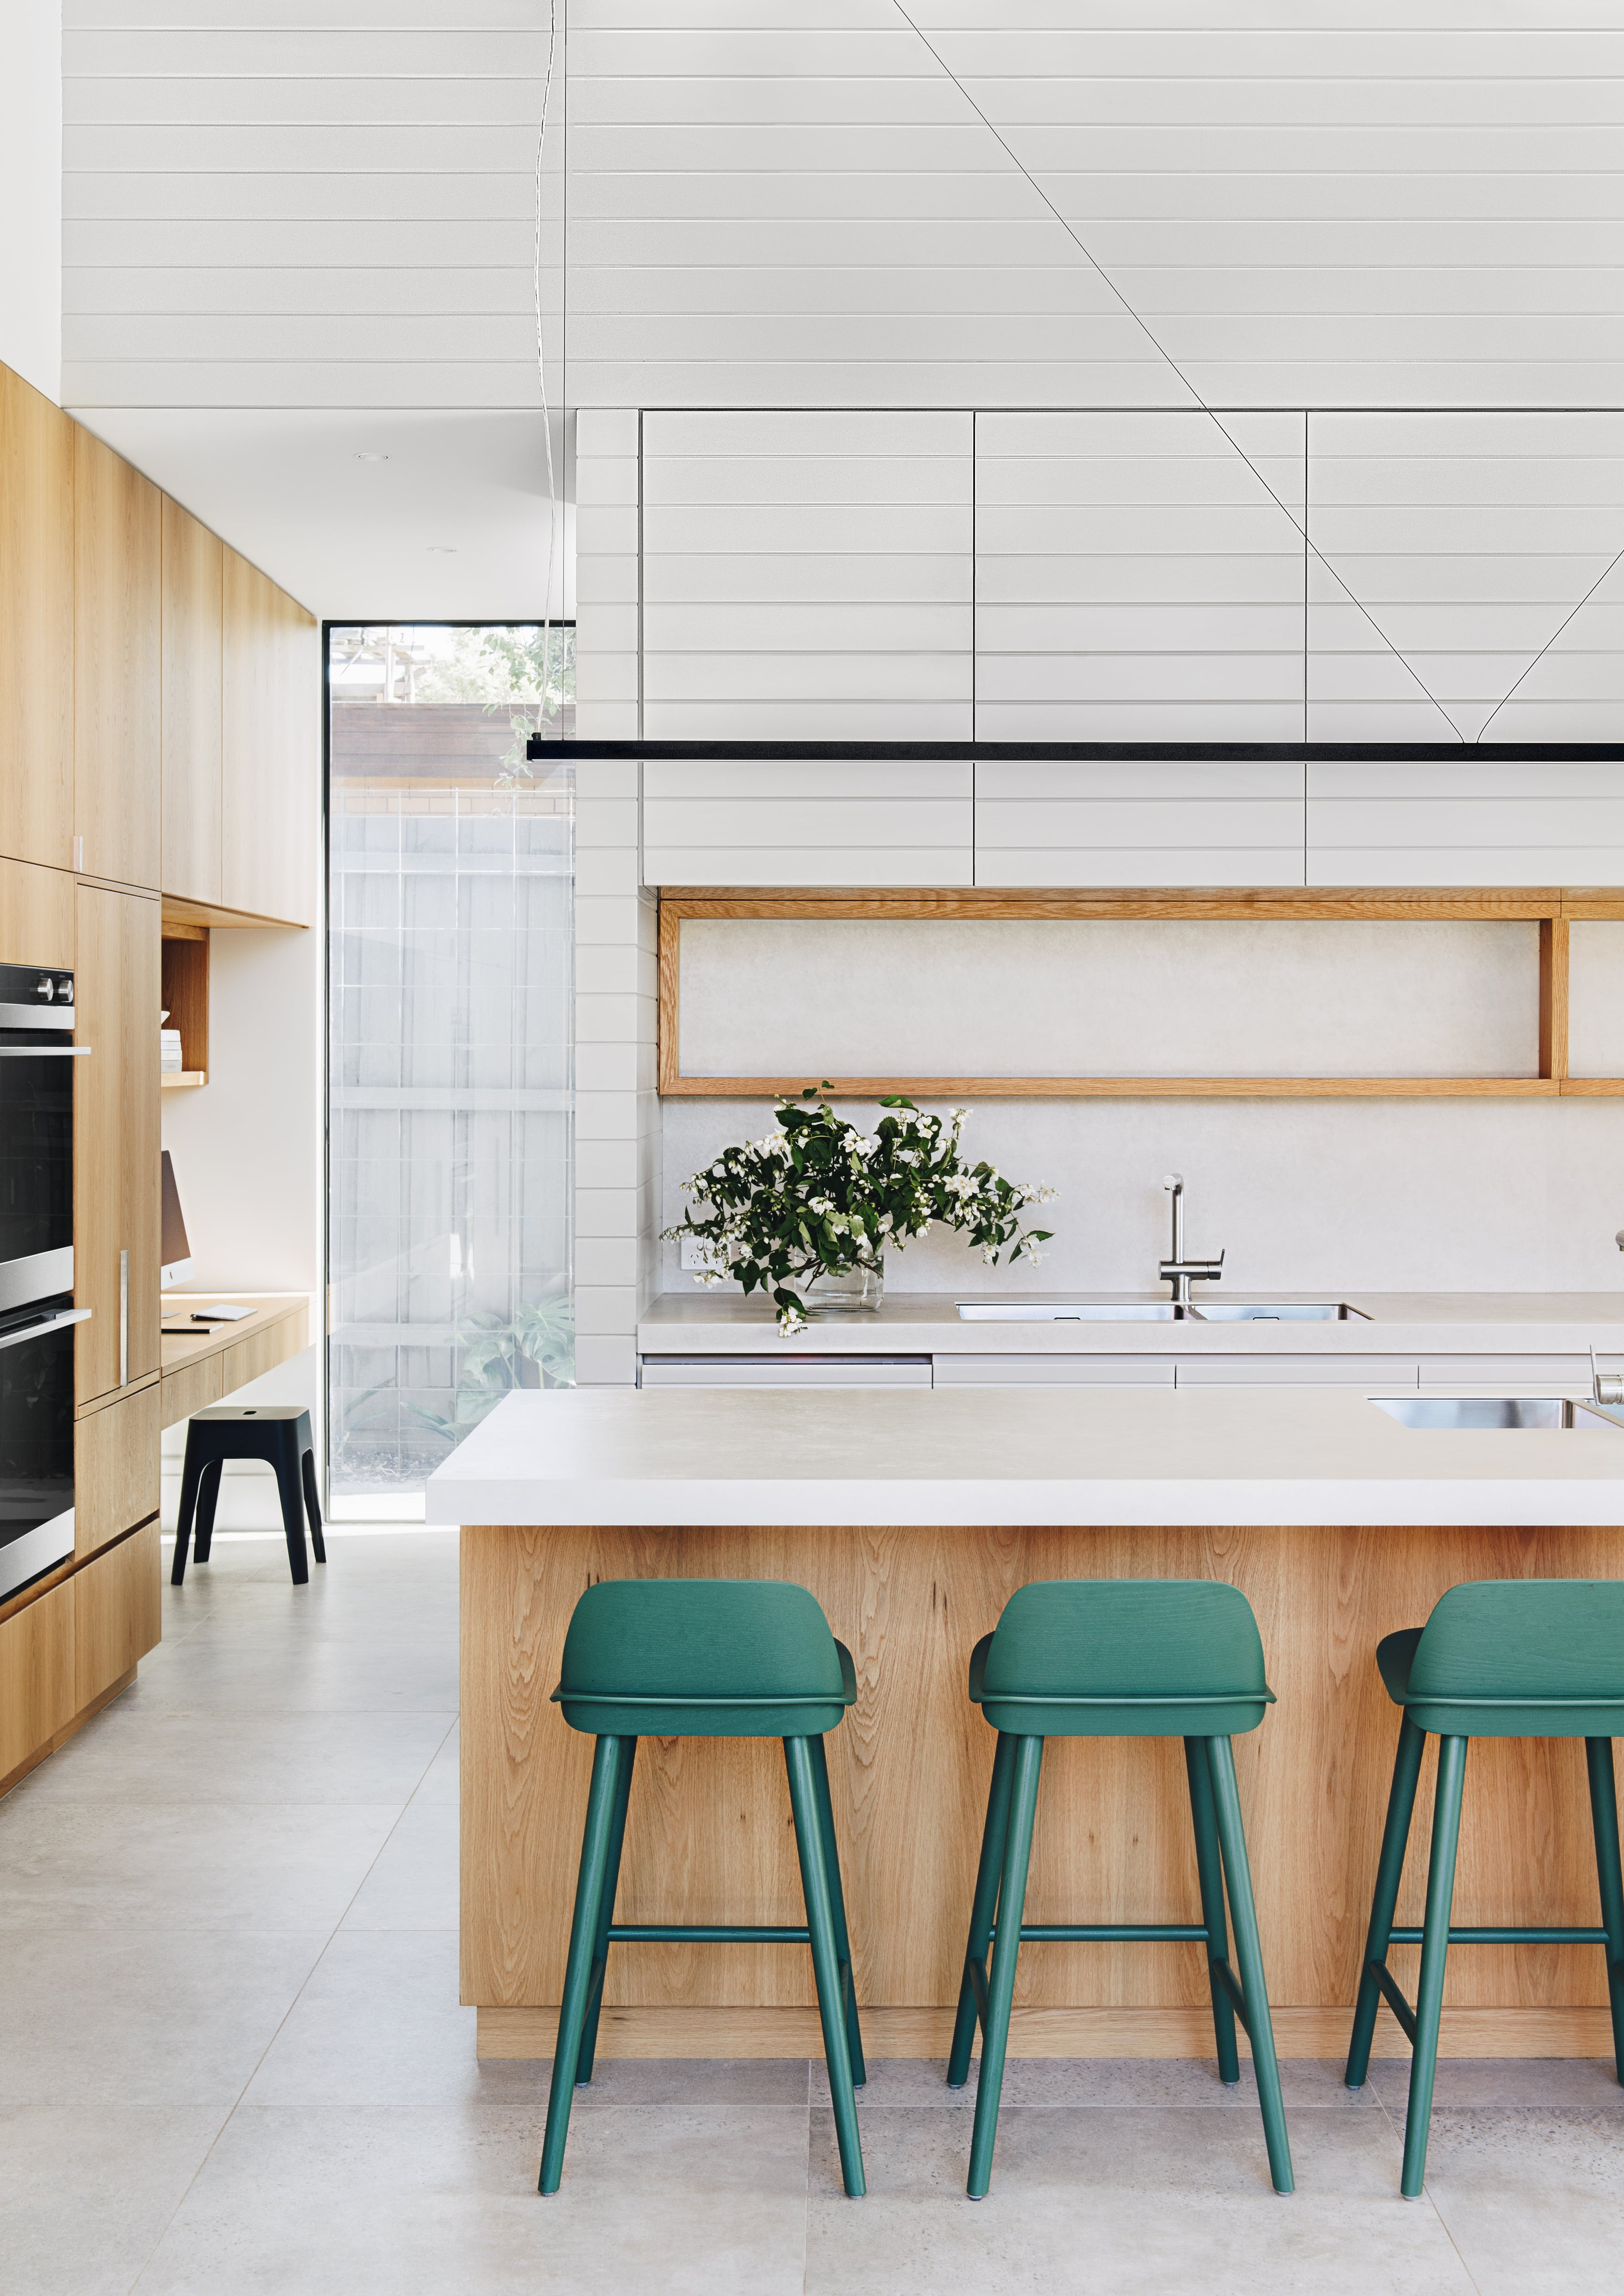 Formerly A 1920s Outbuilding For A Nearby Mansion In The Melbourne Suburb Of Caulfield